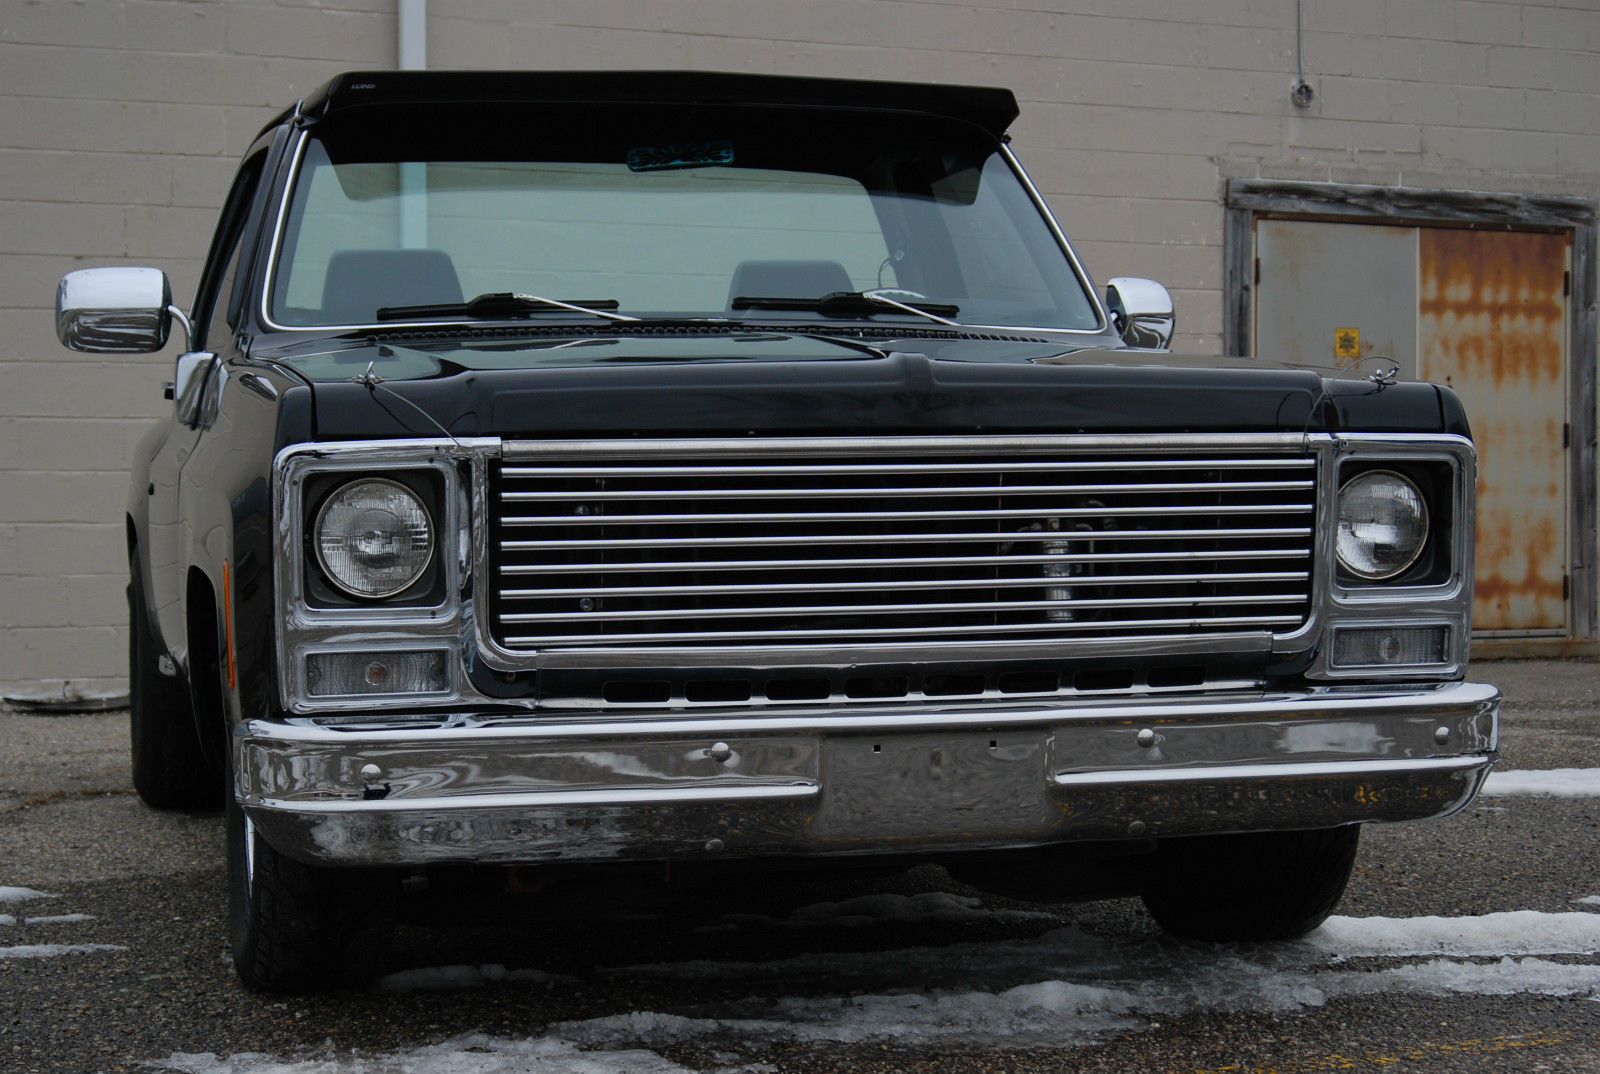 1980 Chevrolet C10 SHORT BED STEP SIDE DELUXE CUSTOM AIR RIDE LOWERED - Classic Chevrolet C-10